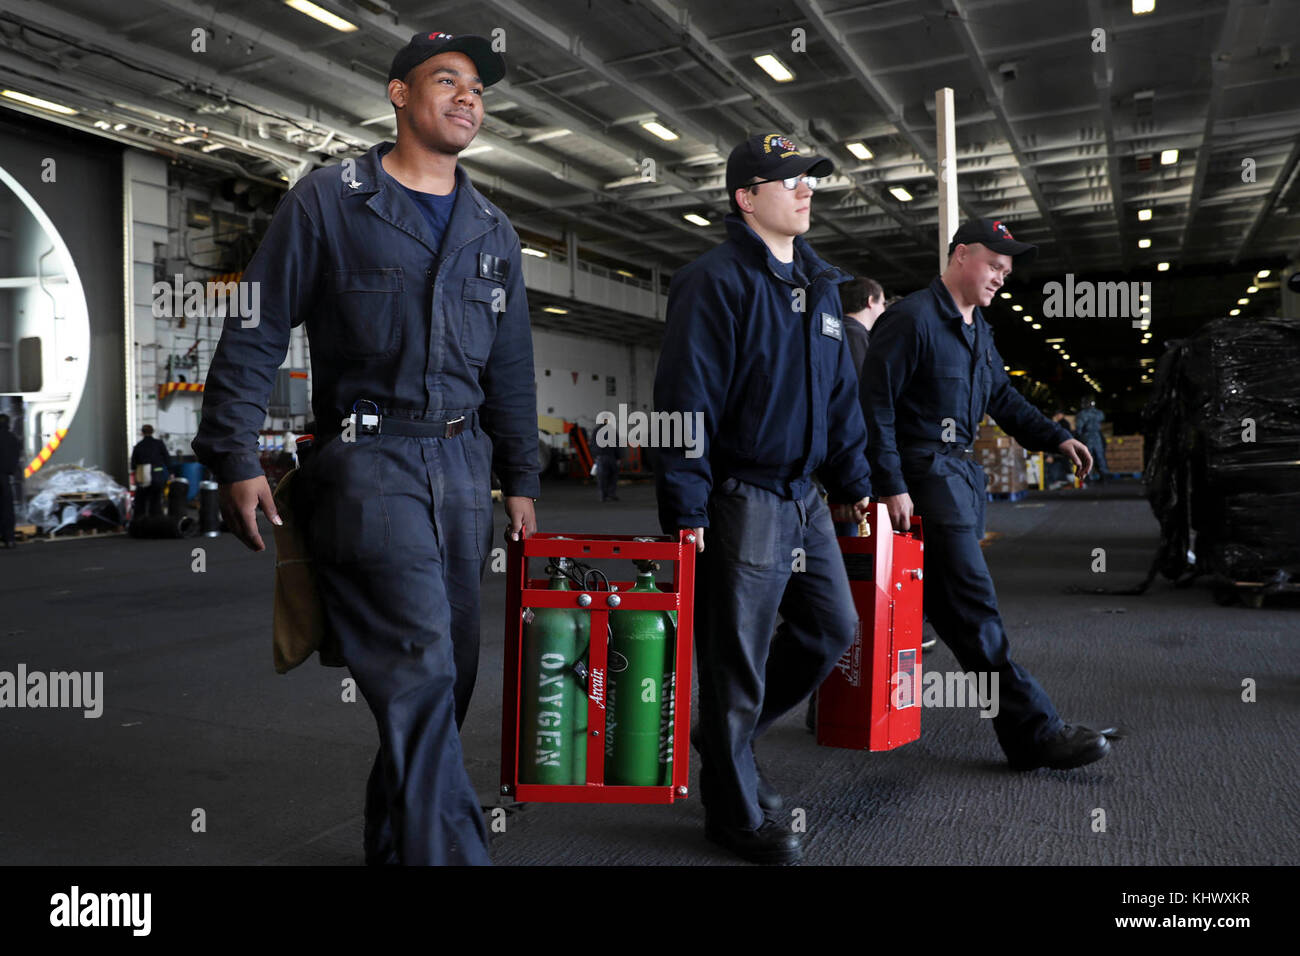 NORFOLK (Nov. 14, 2017) Sailors transport liquid oxygen in the hangar bay aboard the Nimitz-class aircraft carrier - Stock Image